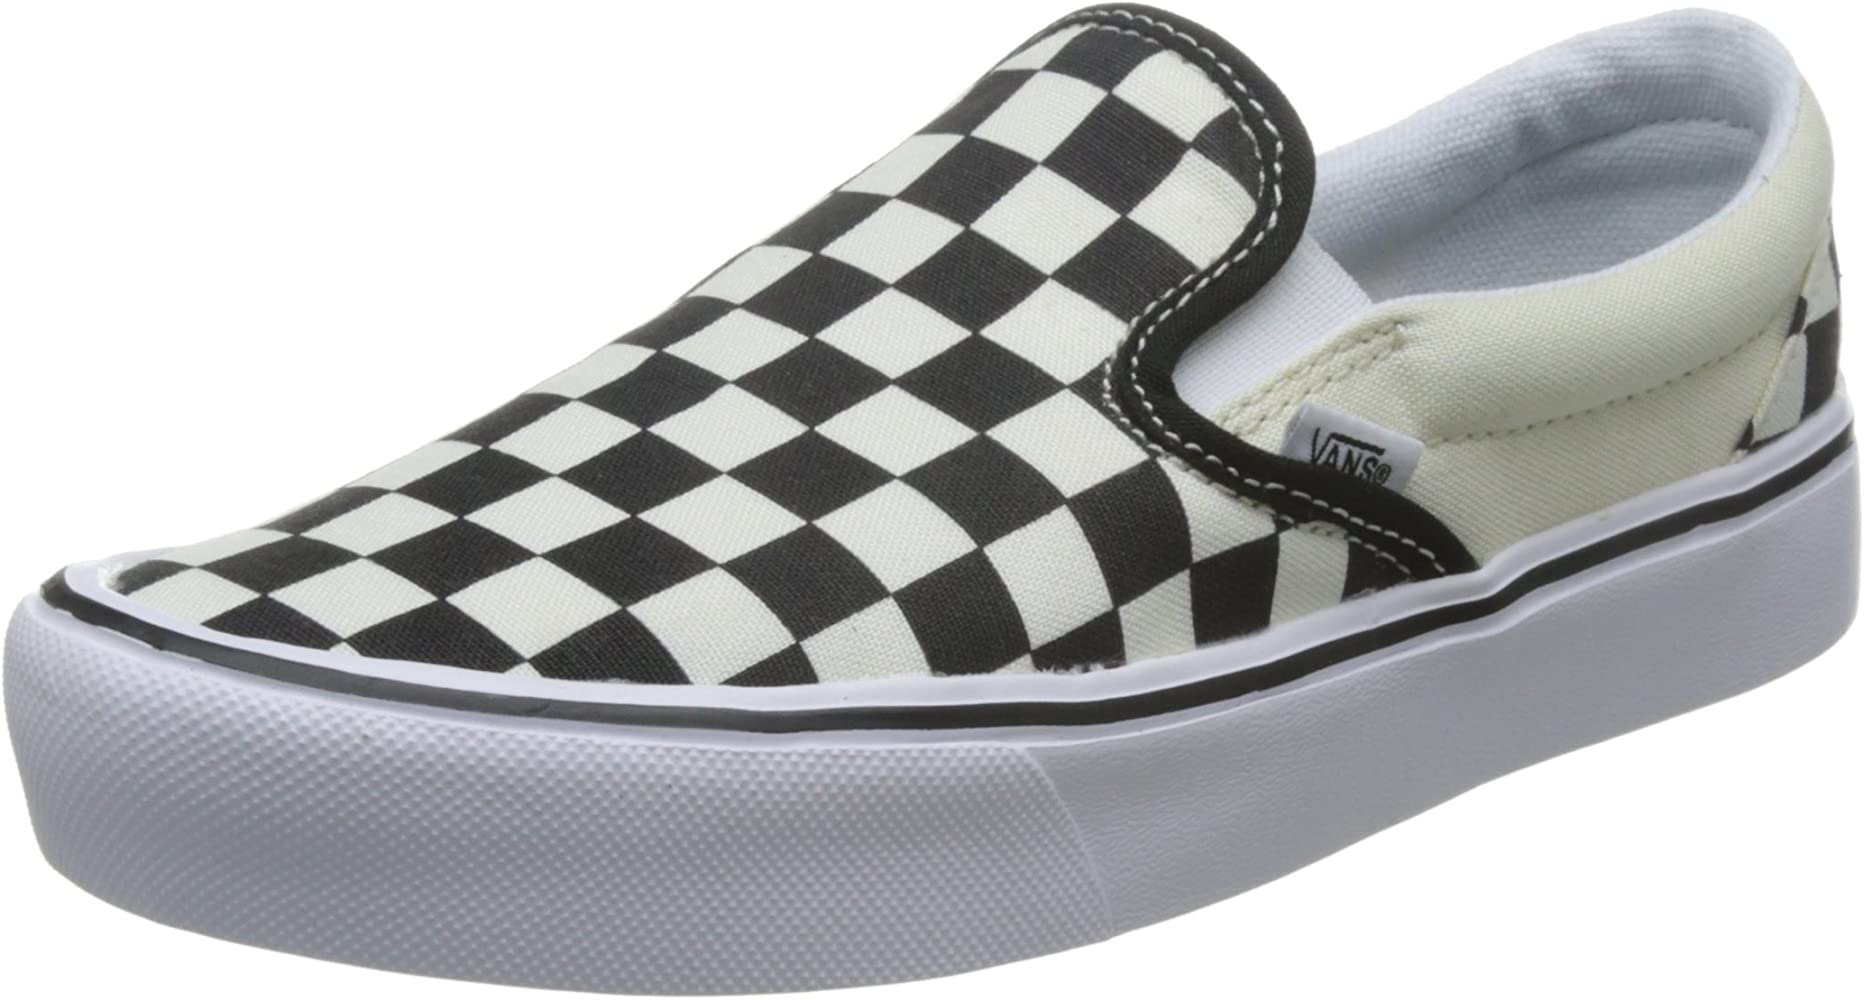 Vans Slip-On Lite - Checkerboard/Black/Classic White - Unisex ...